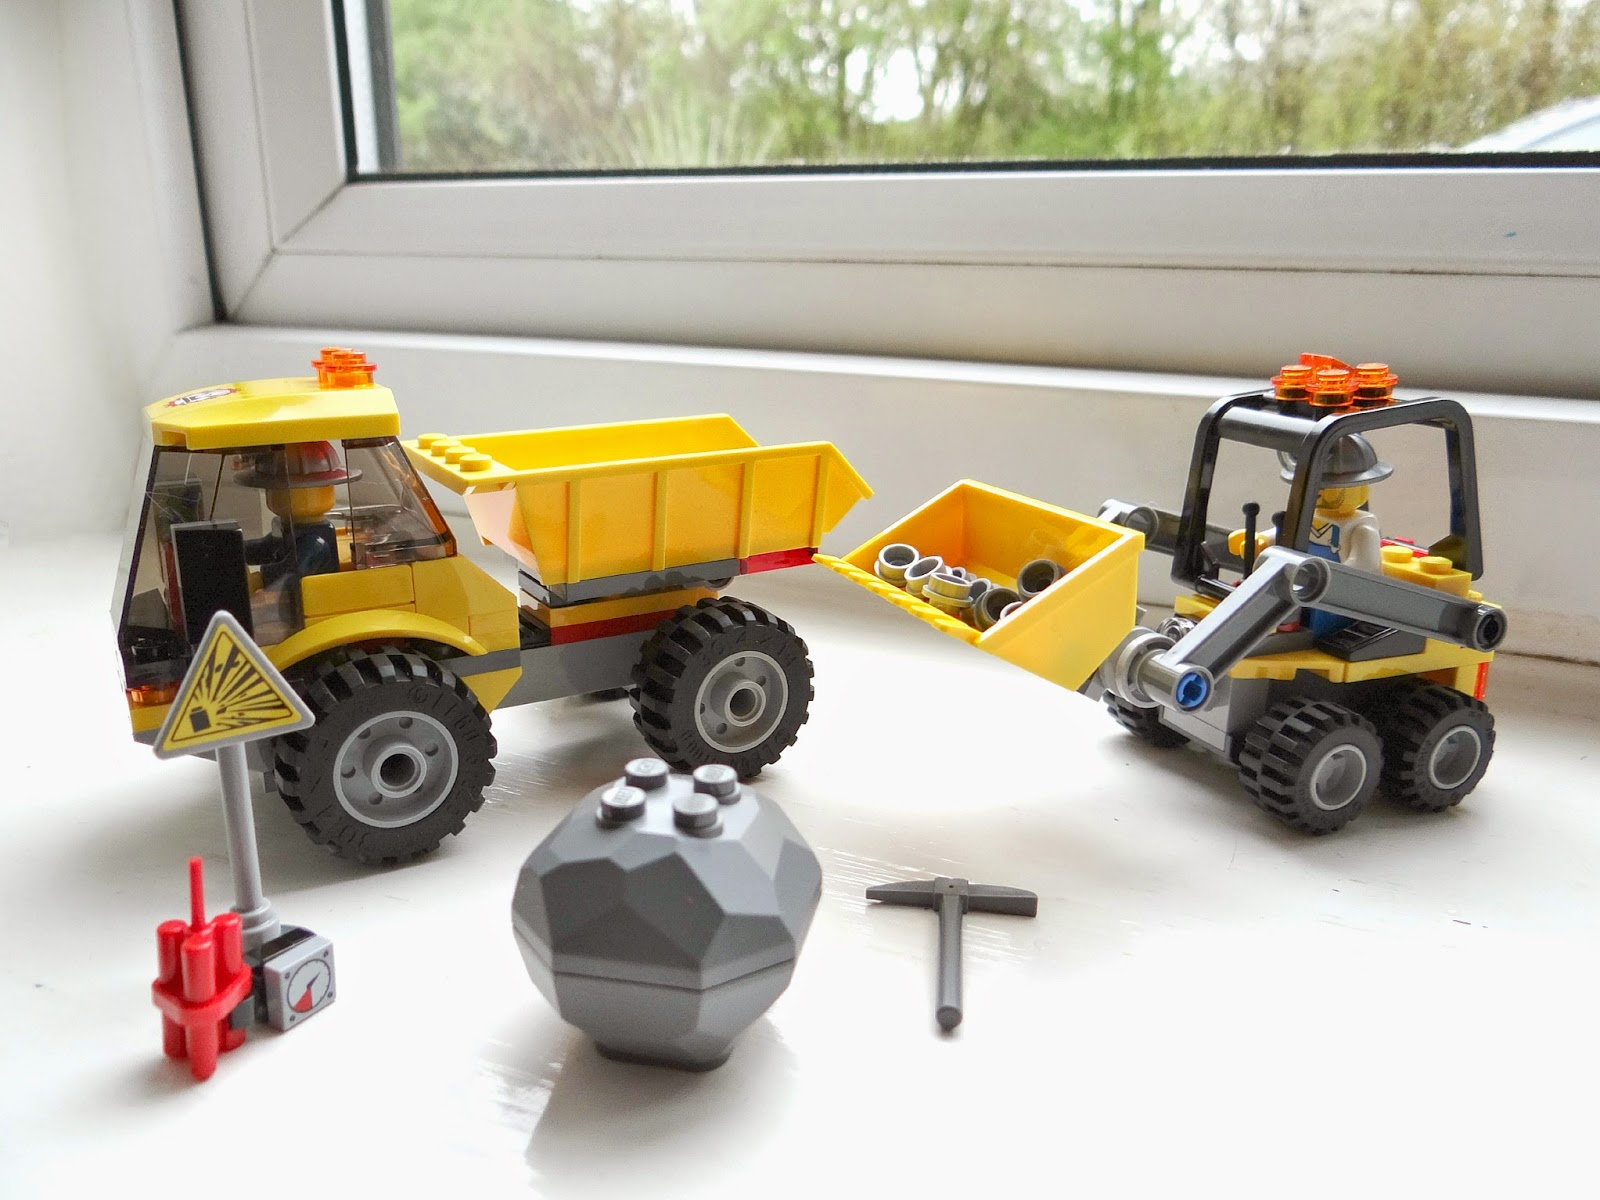 LEGO City, LEGO City Loader and Tipper, LEGO City Excavator Transport